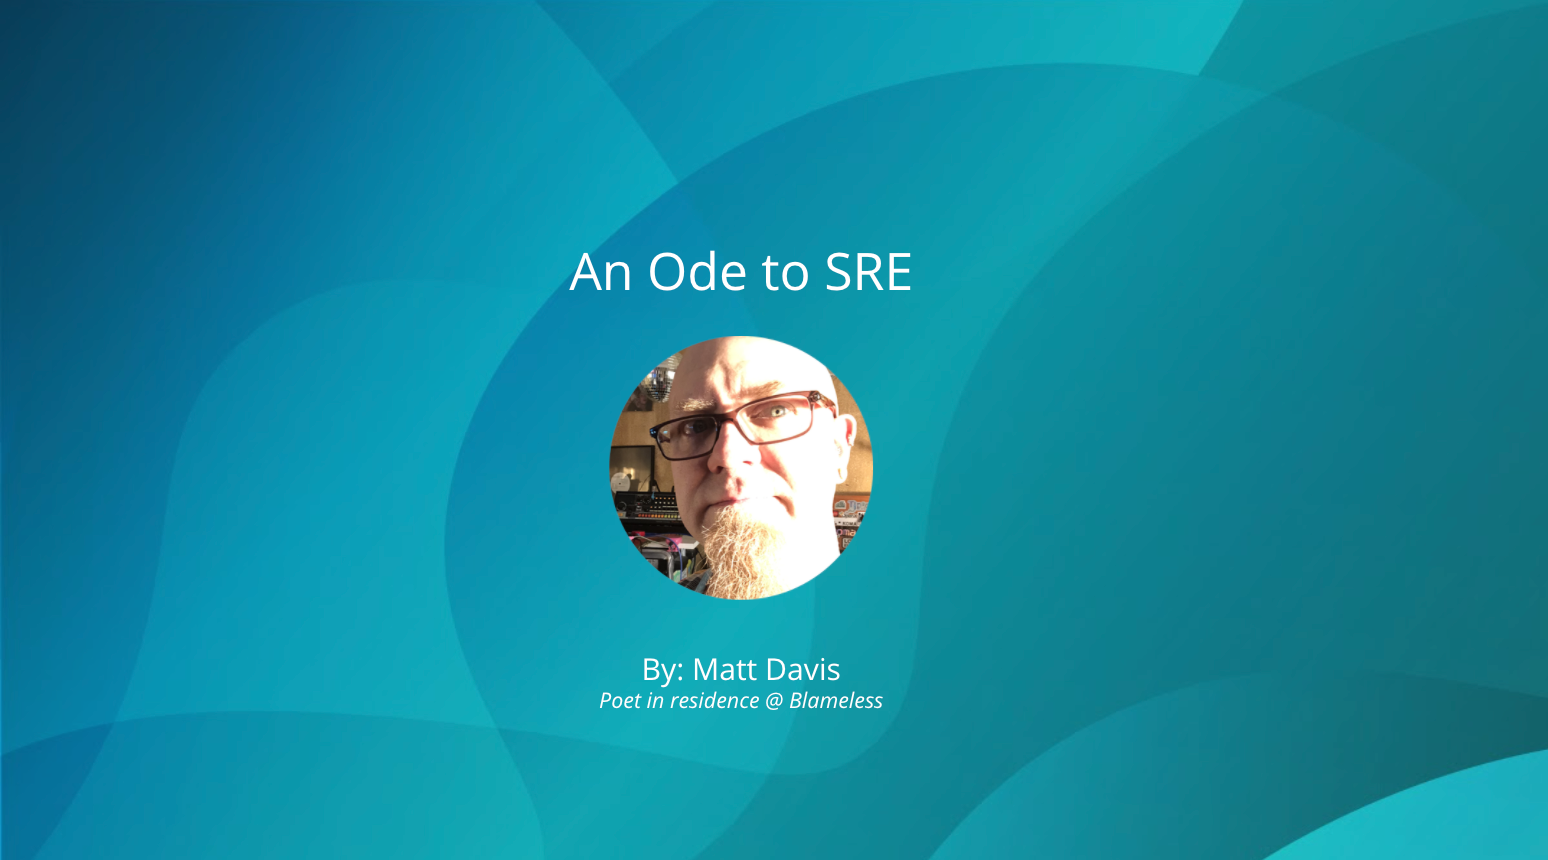 An Ode to SRE